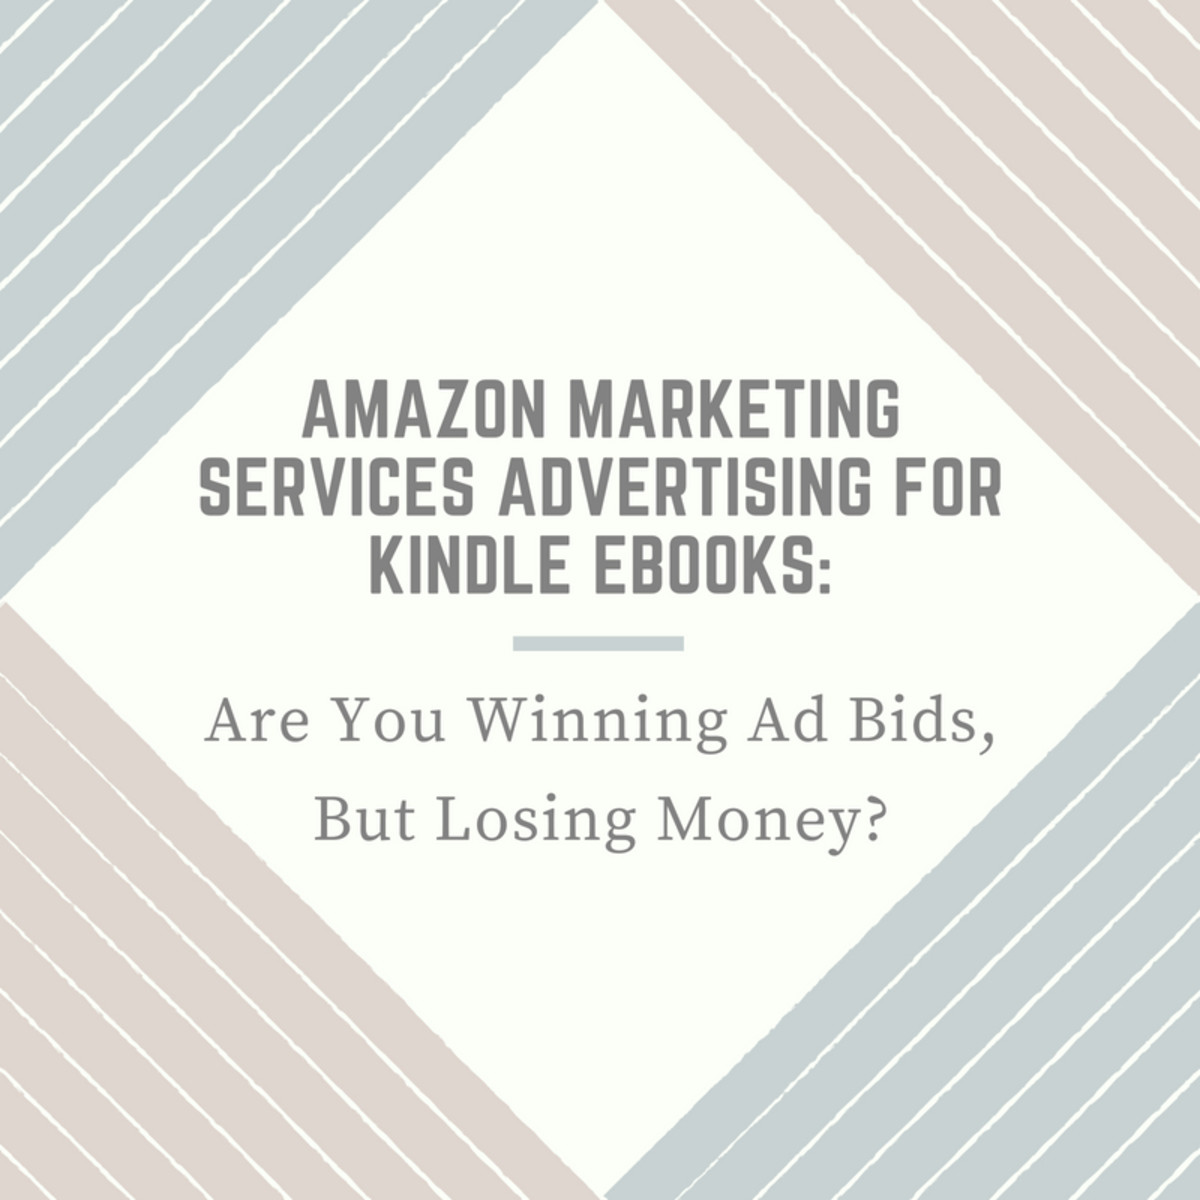 amazon-marketing-services-advertising-for-kindle-ebooks-are-you-winning-ad-bids-but-losing-money